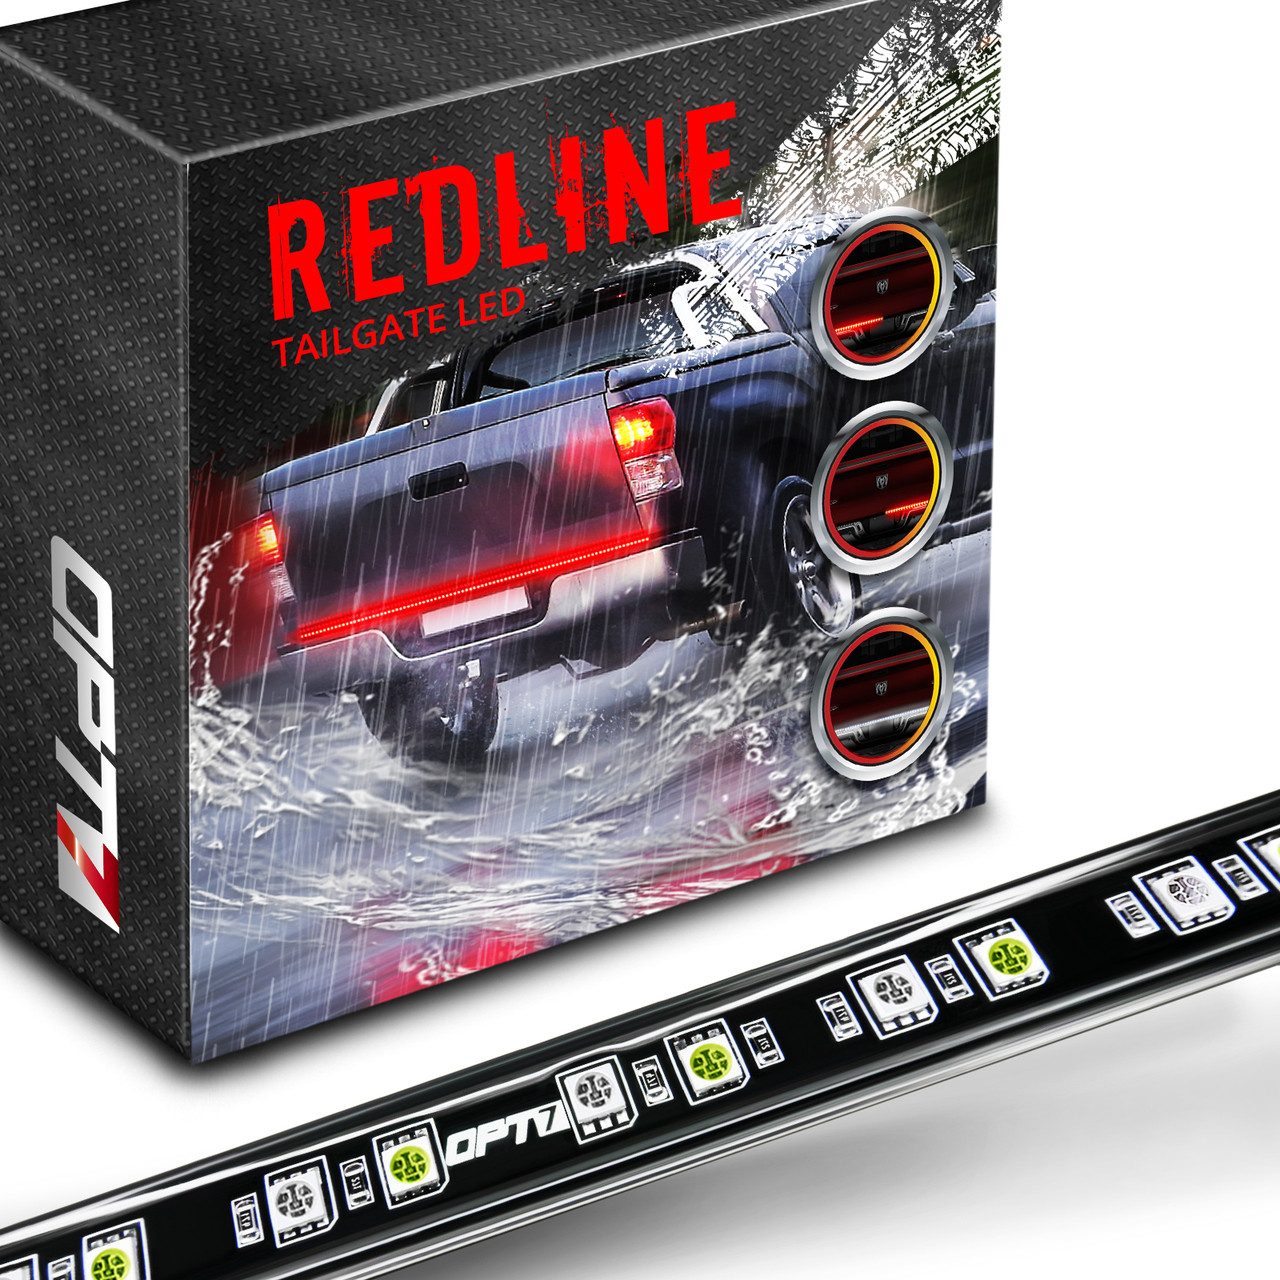 Redline Led Tailgate Brake Light Bar With Reverse Opt7 Hid Wiring Schematic